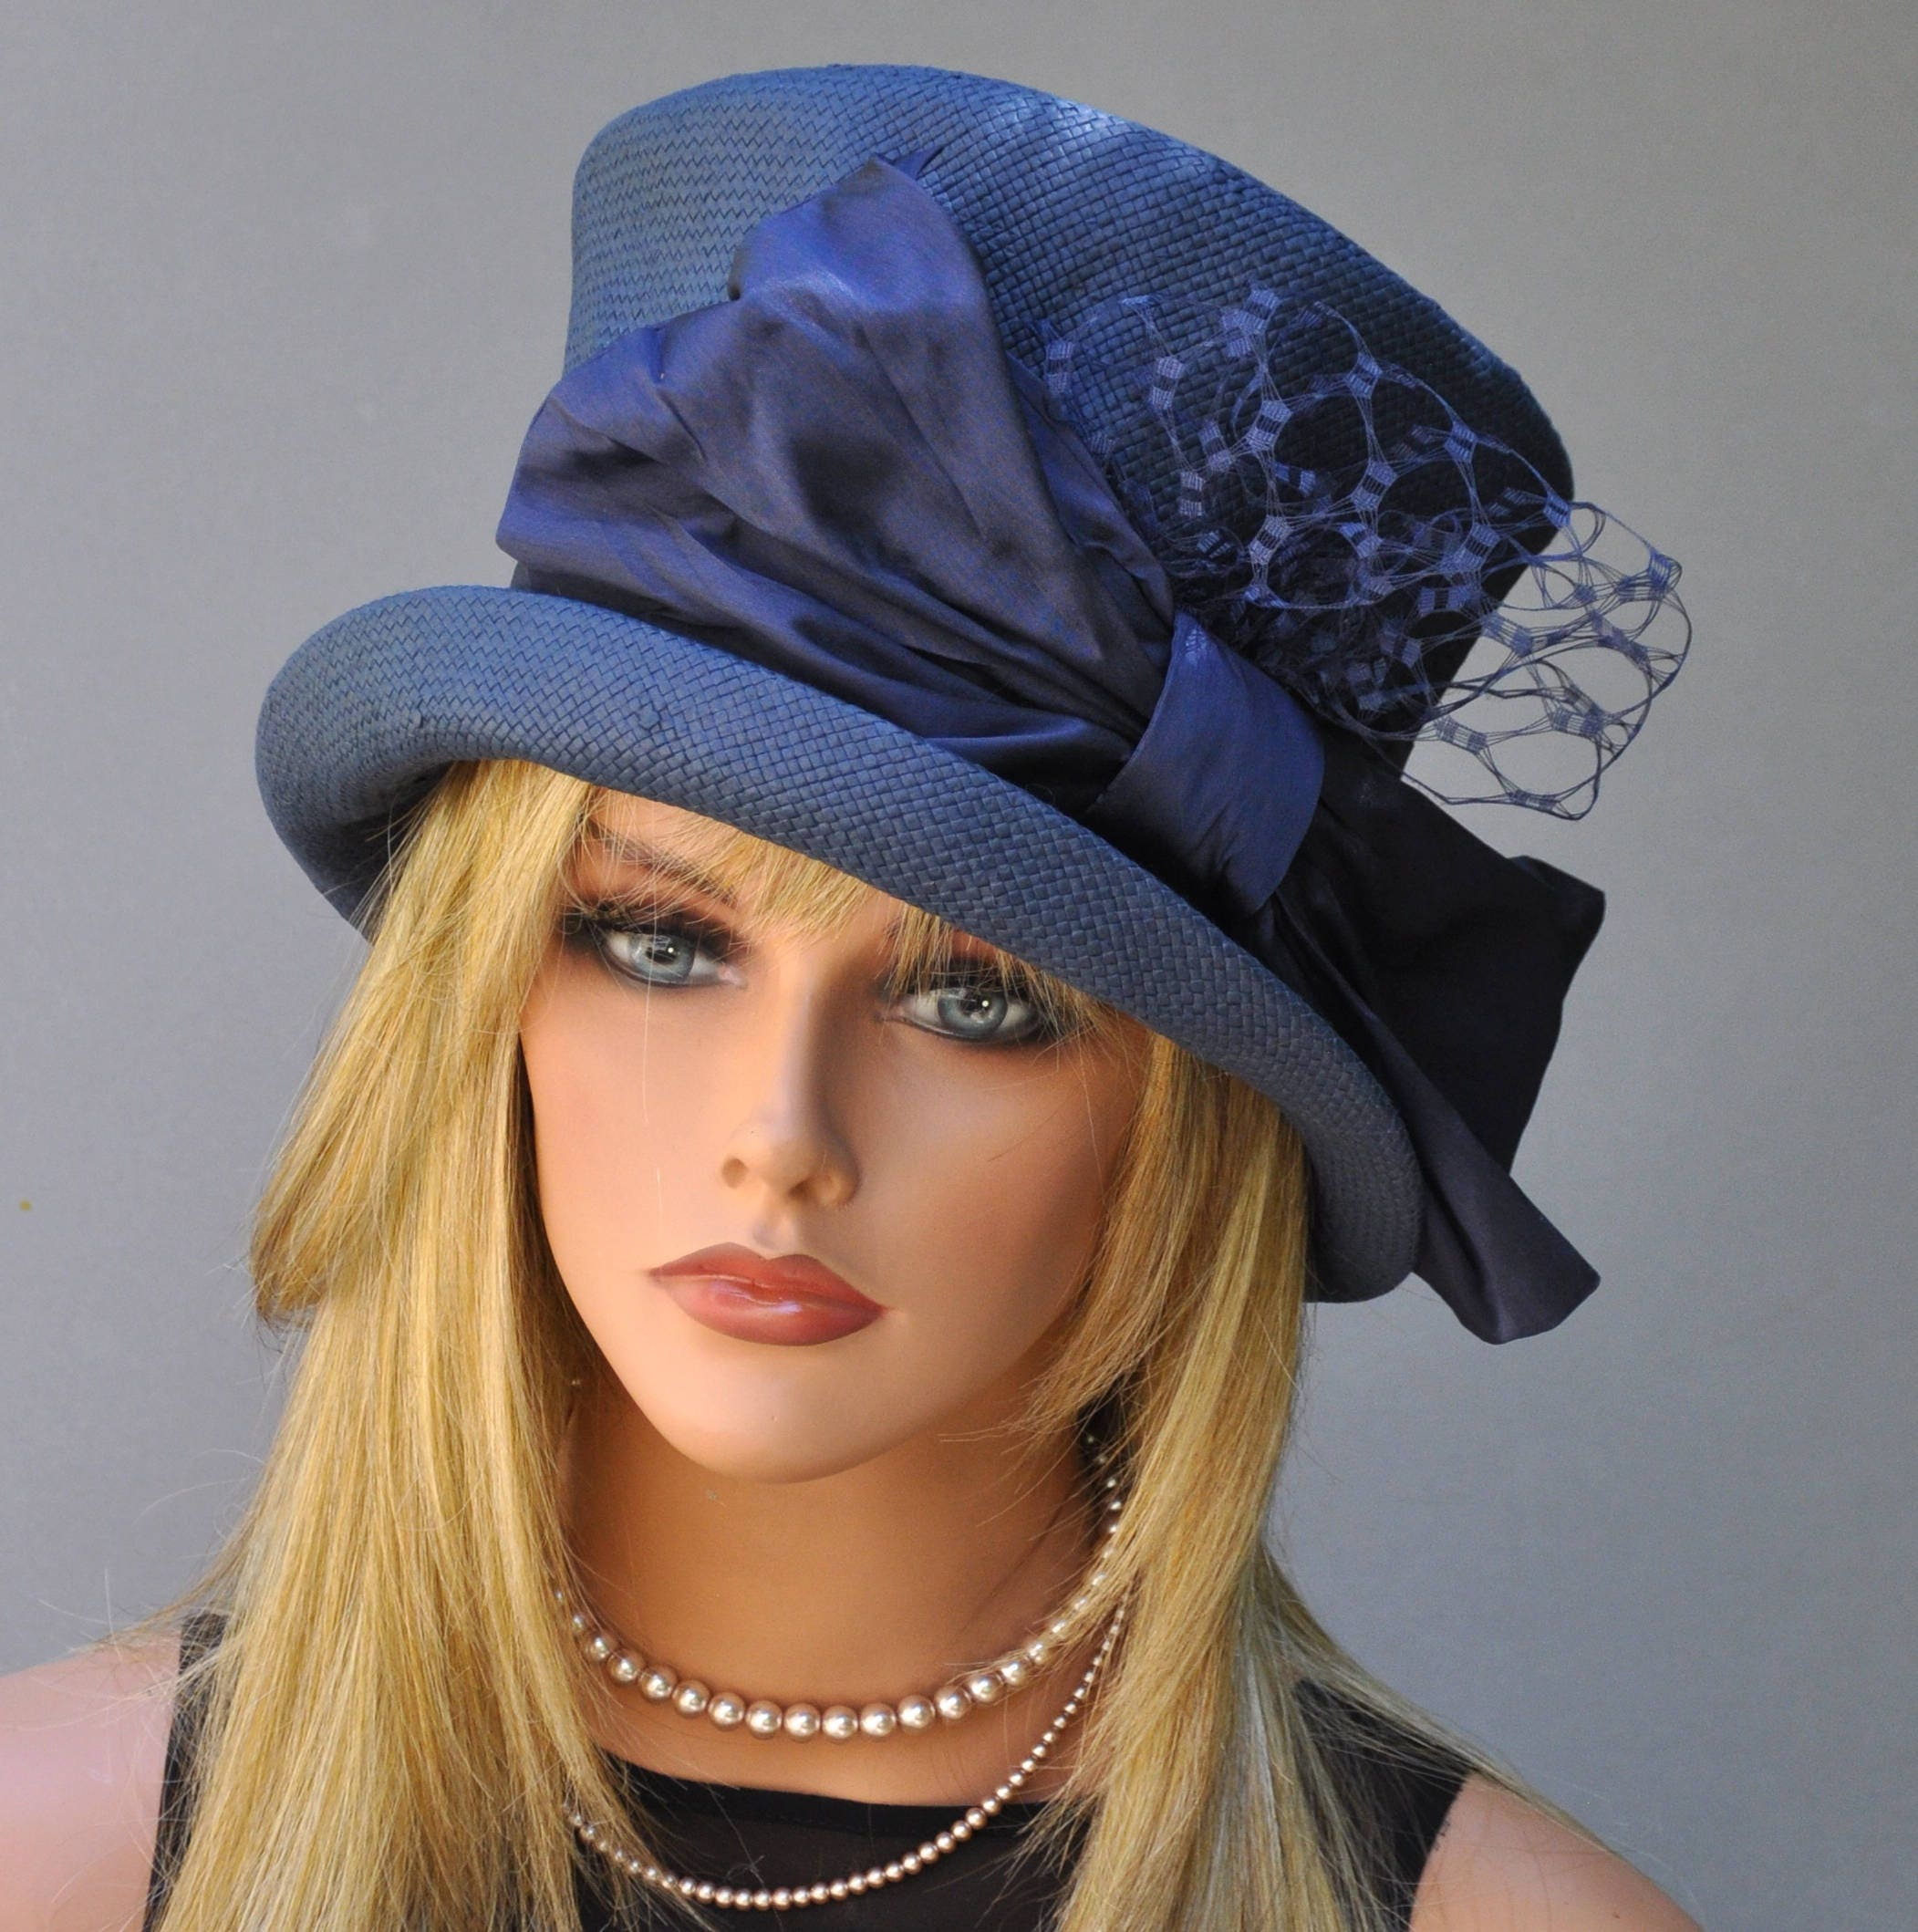 Hats derby for women catalog photo